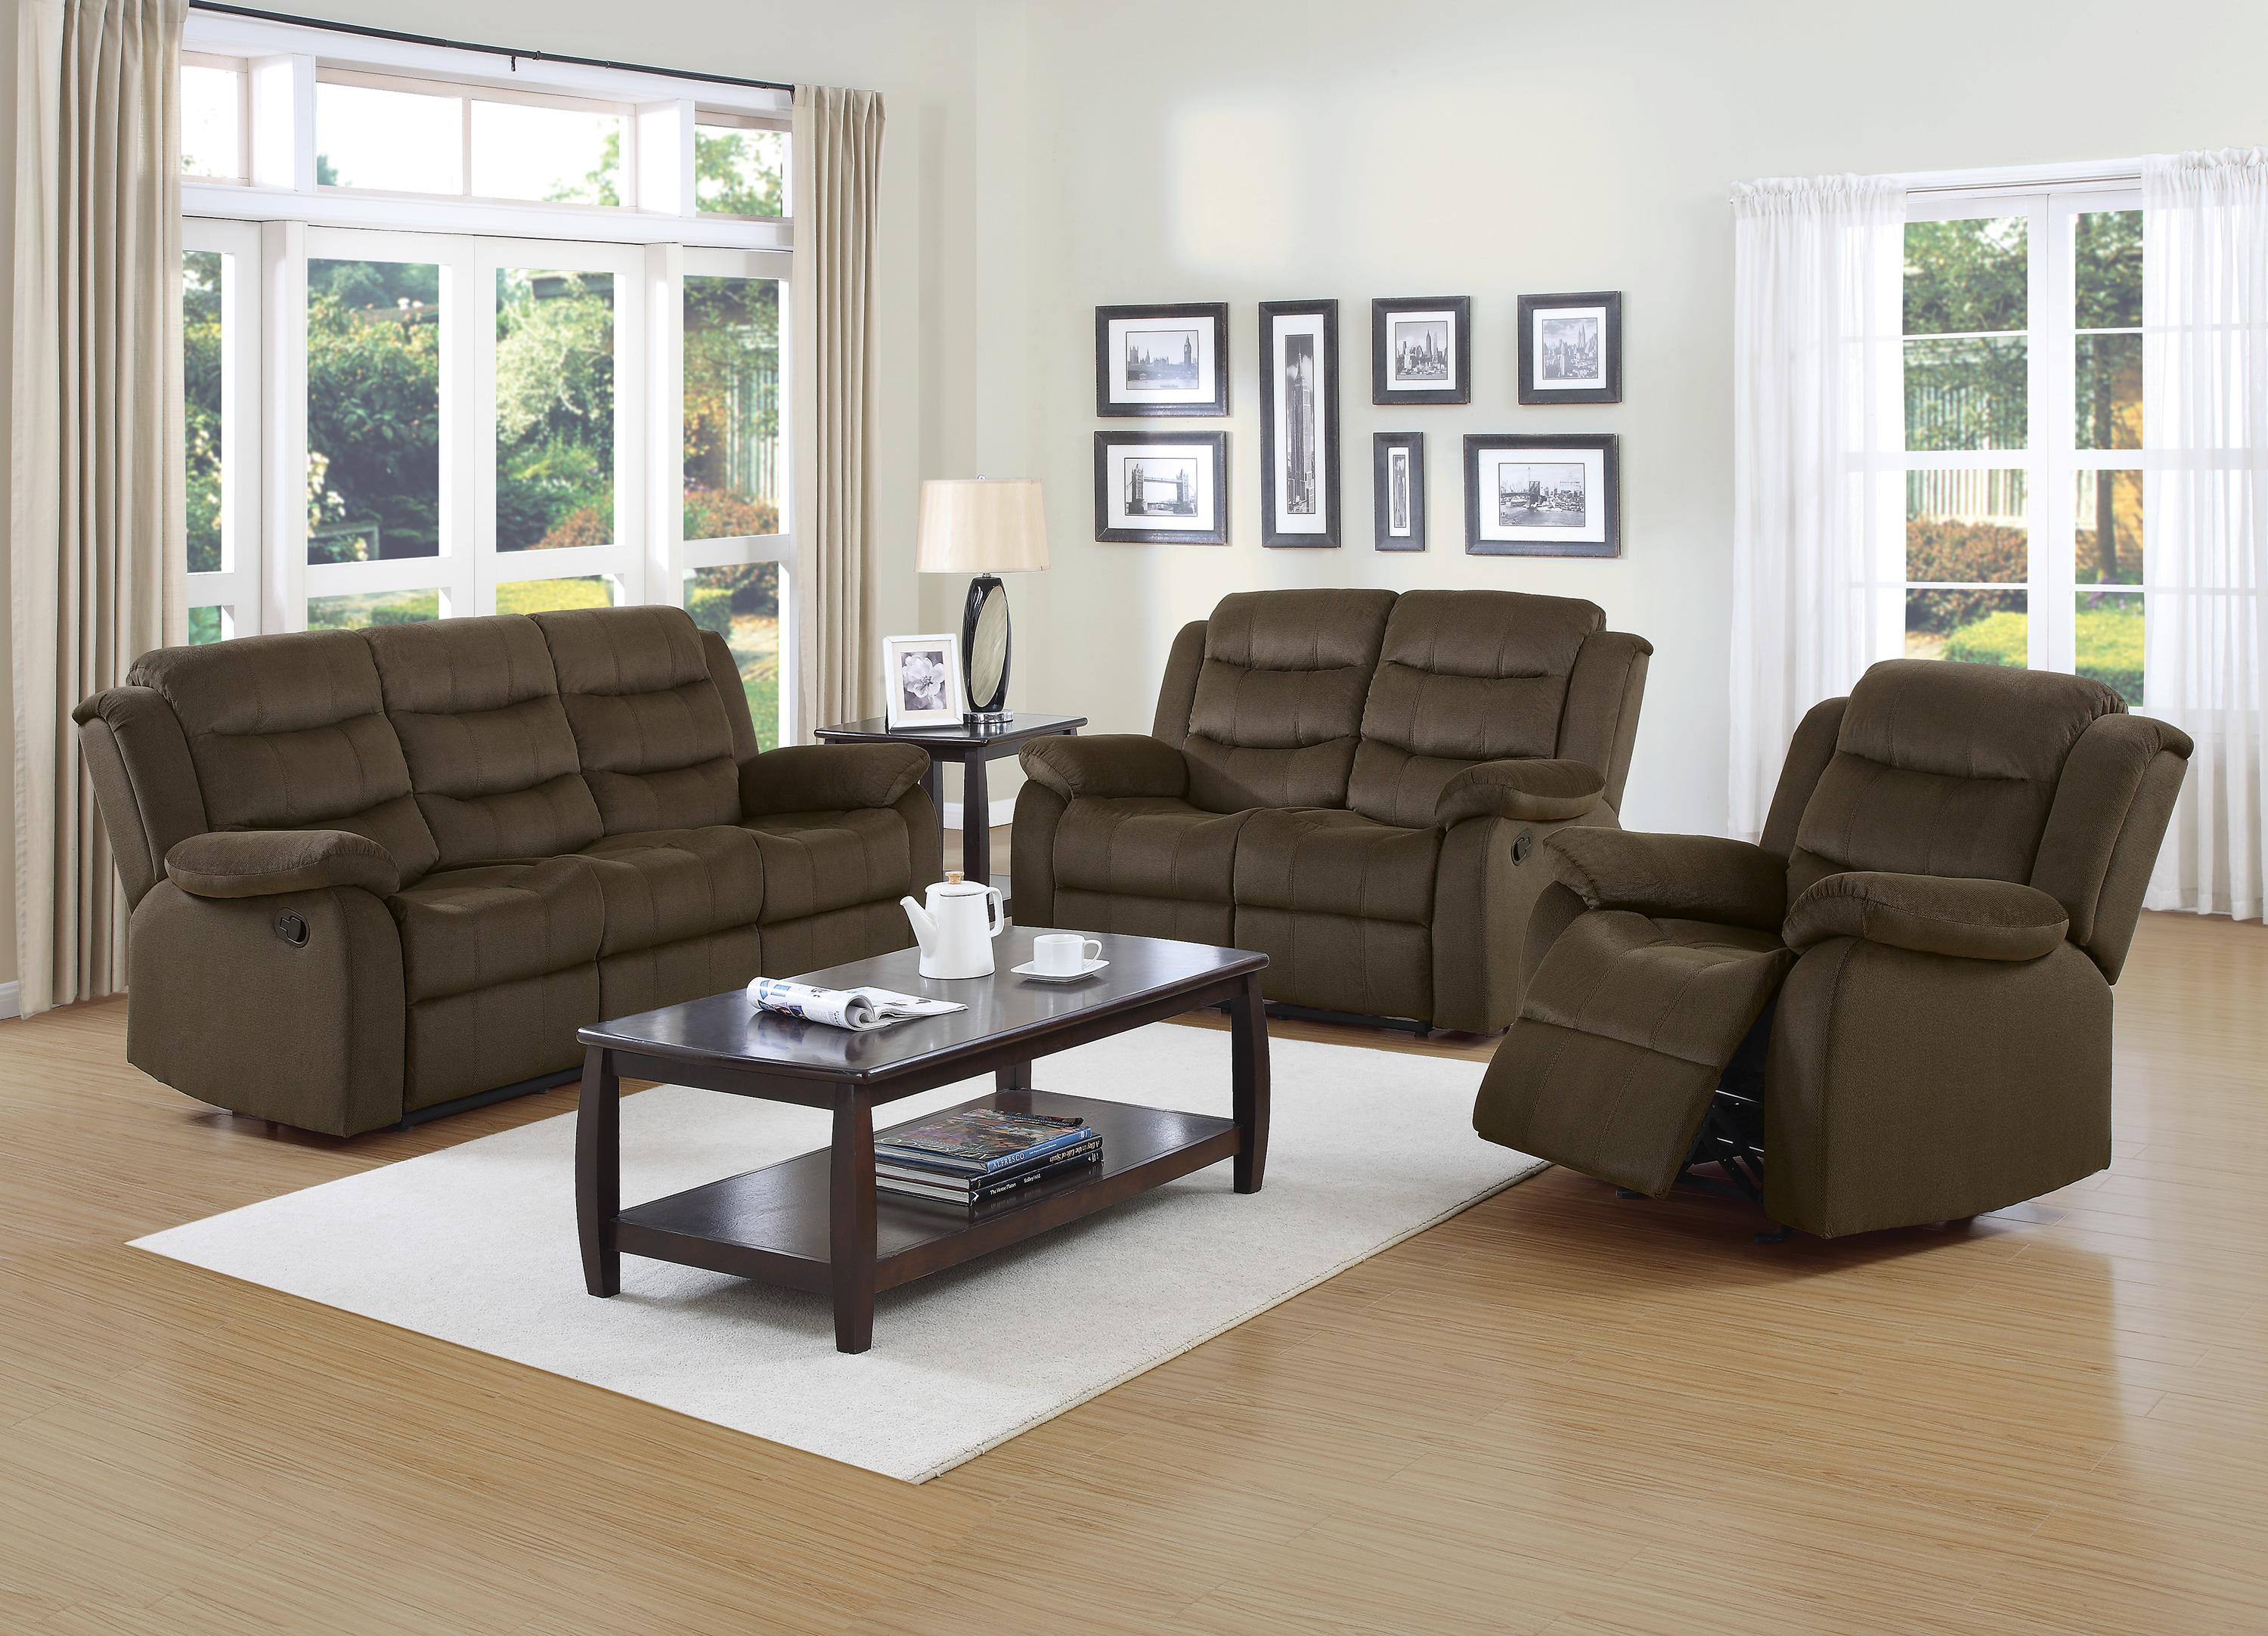 Coaster Rodman Casual Motion Sofa with Pillow Arms Value City